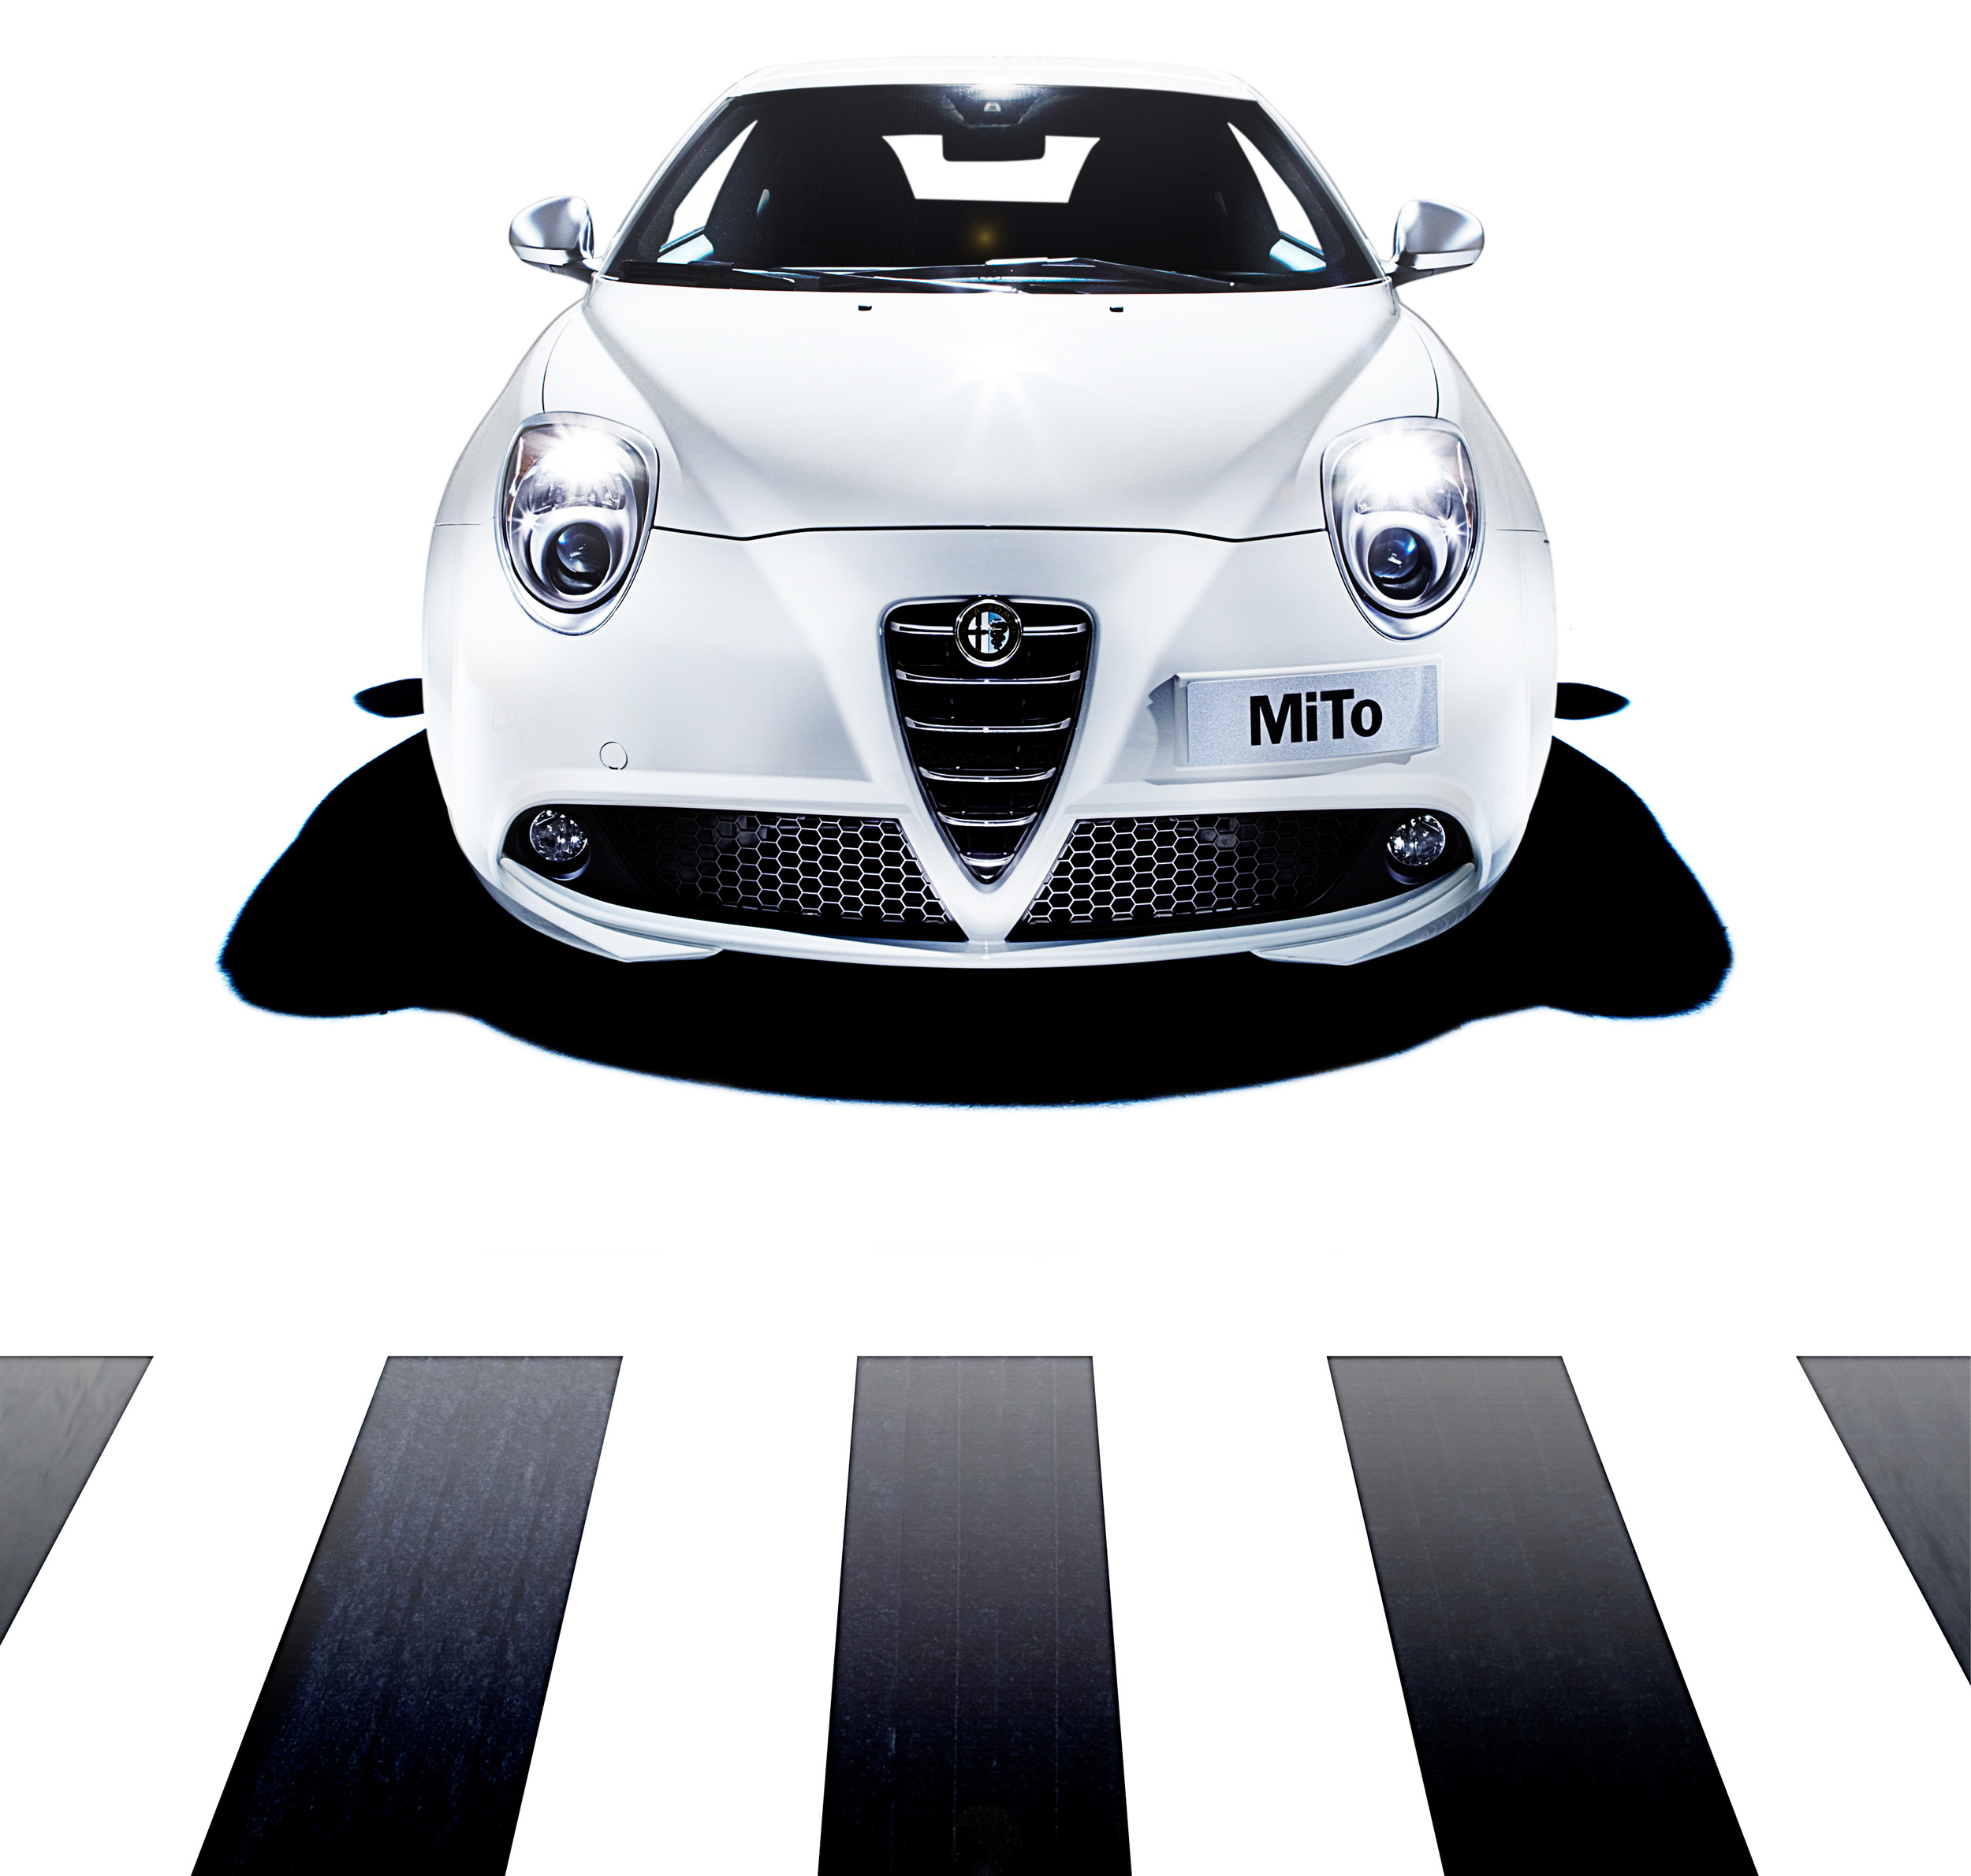 Alfa_paris_DF